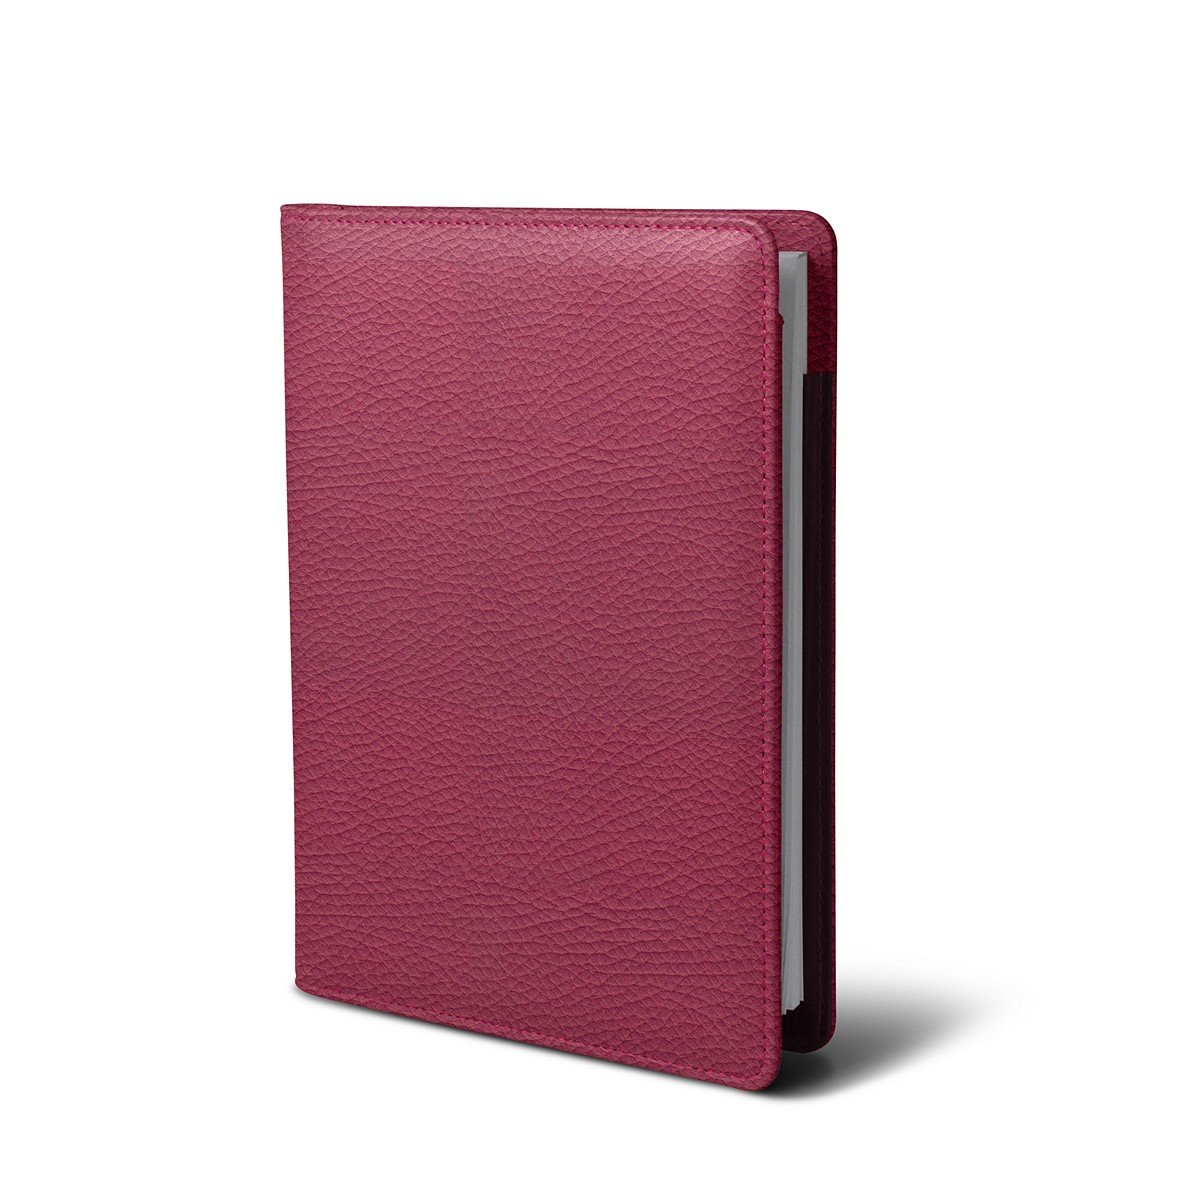 Lucrin - A5 document wallet - Fuchsia - Granulated Leather by Lucrin (Image #3)